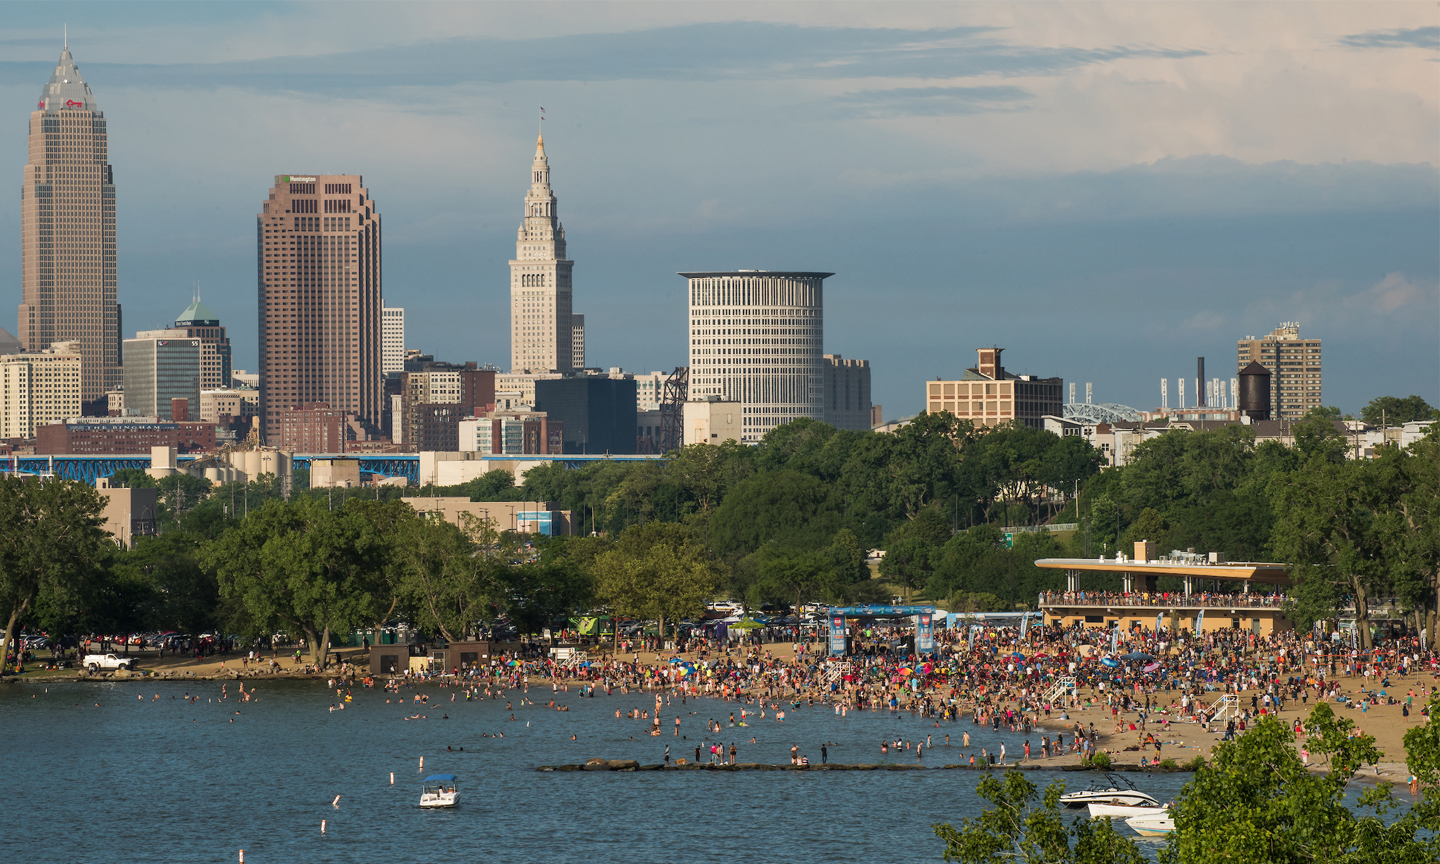 Cleveland Metroparks Rangers Increase Visibility Along Lakefront